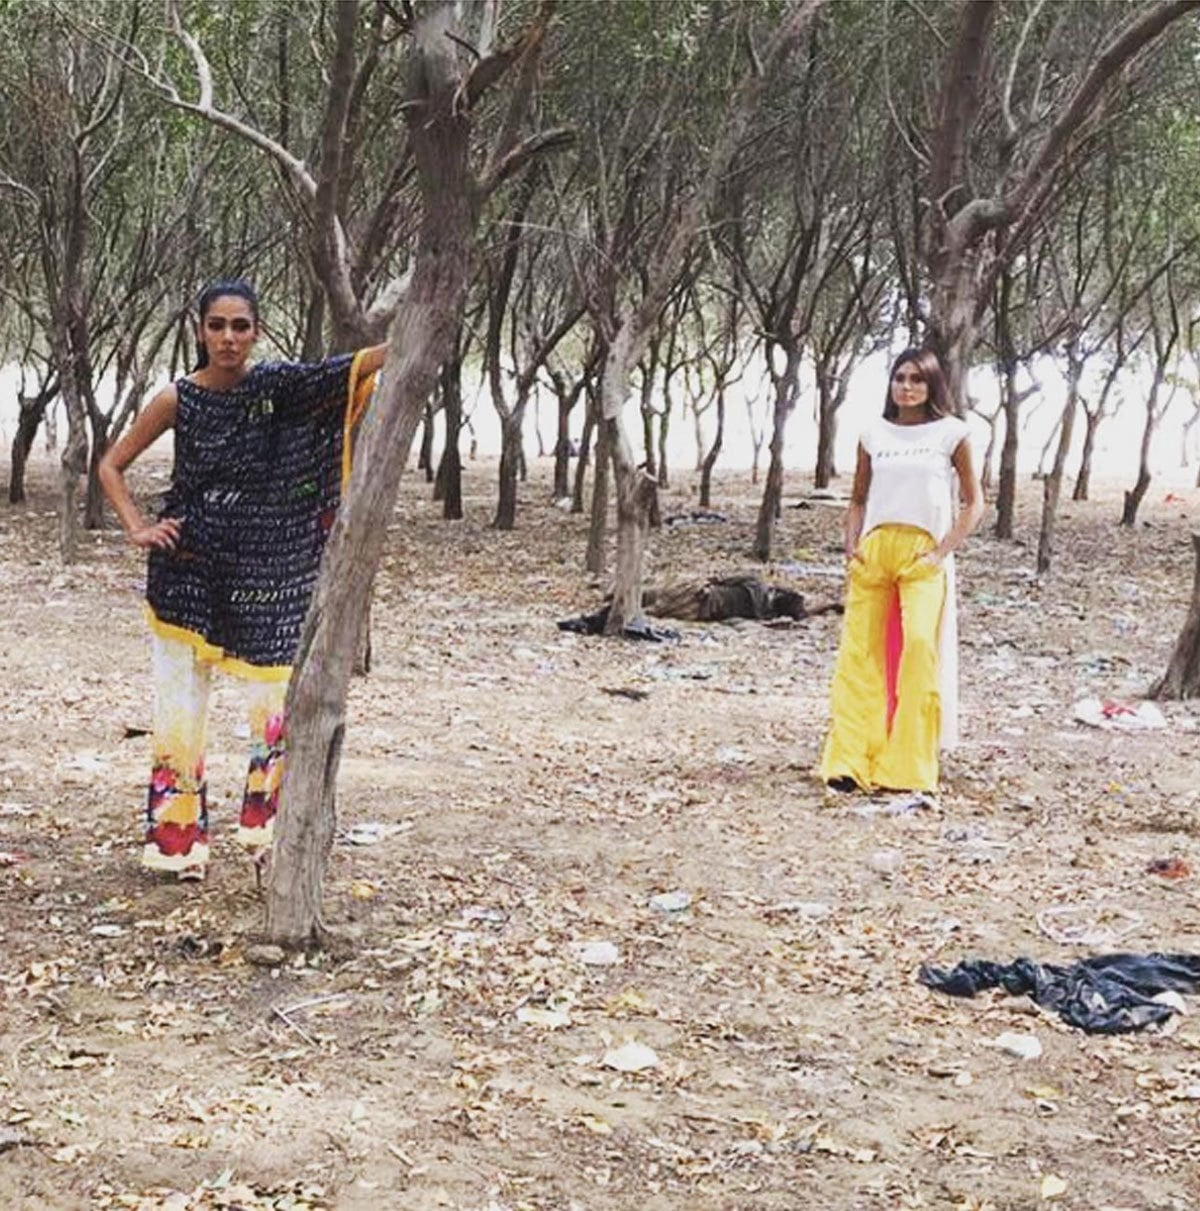 Behind The Scenes from #DeepakPerwani's latest collection FIX IT being shot with #FayezahAnsari and #ZaraAbid. They are shooting all over Defence, #Karachi in some exciting new spaces - Instagram